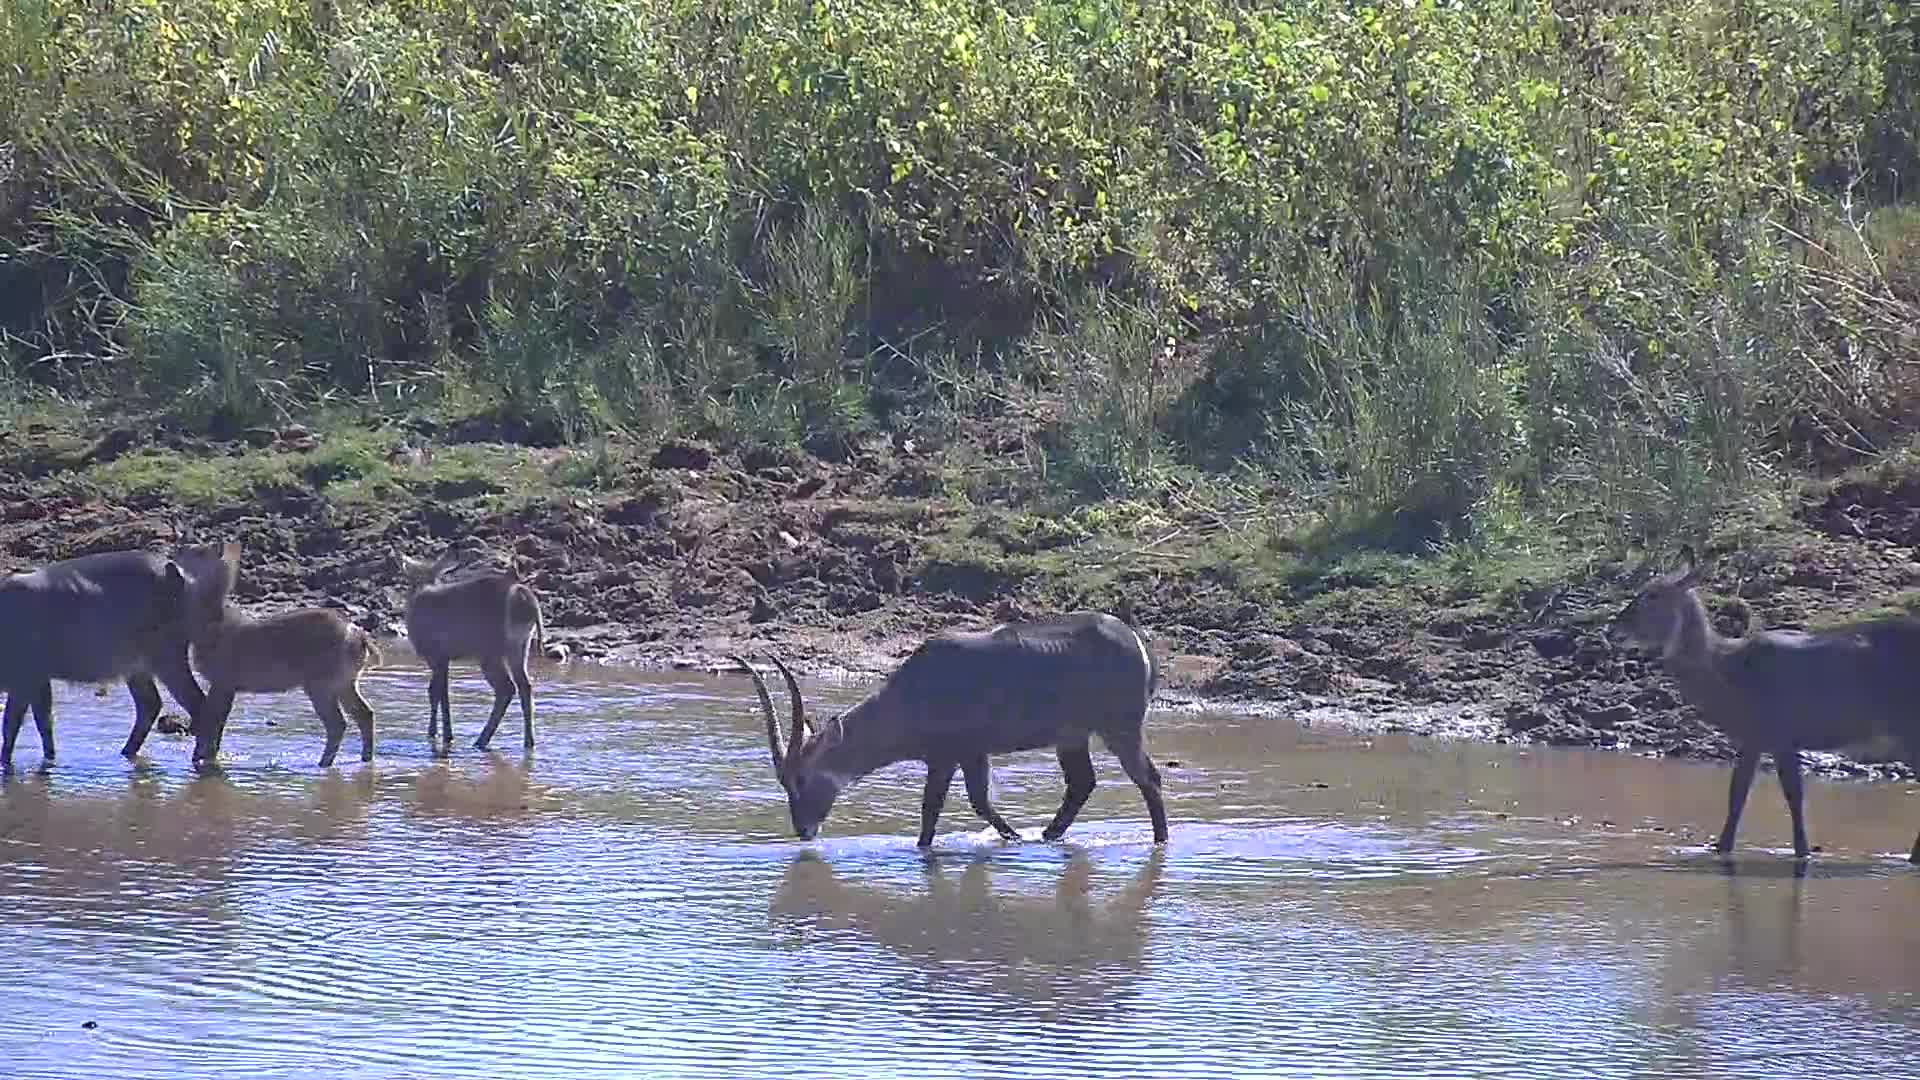 VIDEO: Waterbucks came to drink and crossed the river to rest on an island